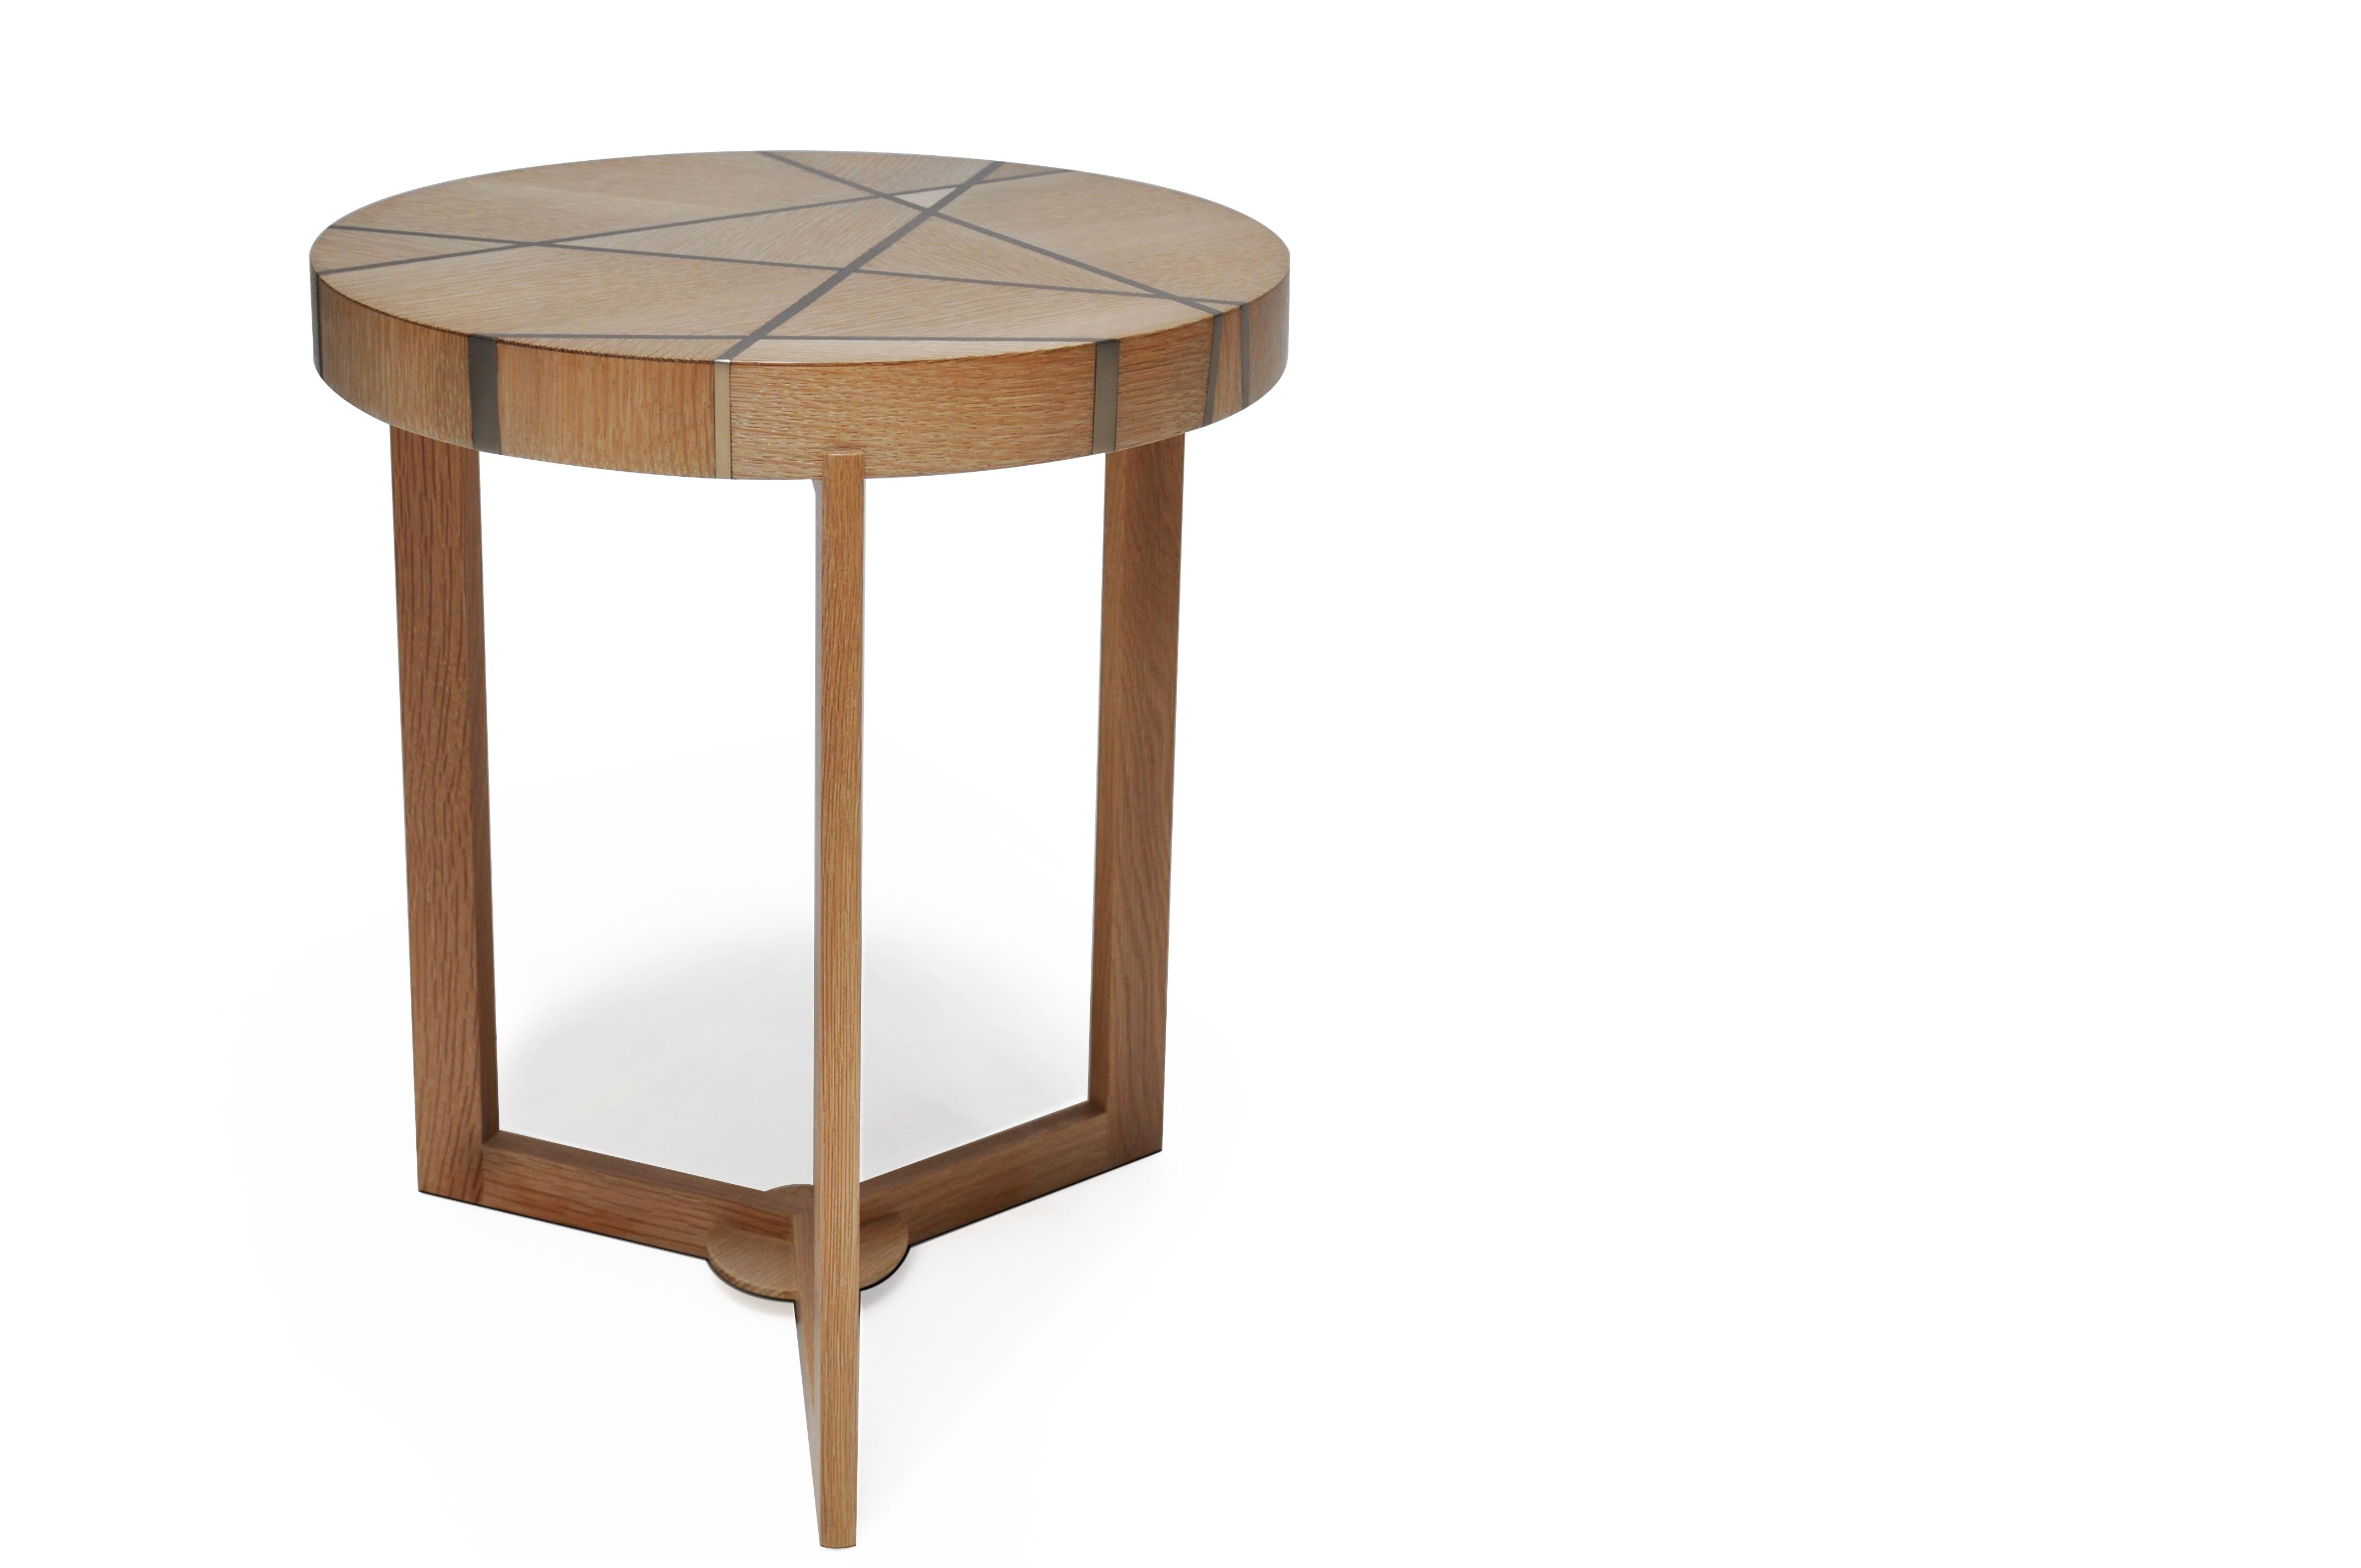 barnwood end tables probably terrific great white oak table ray bleached and nickel newell design for master man mini refrigerator solid wood nightstand black glass dark brown